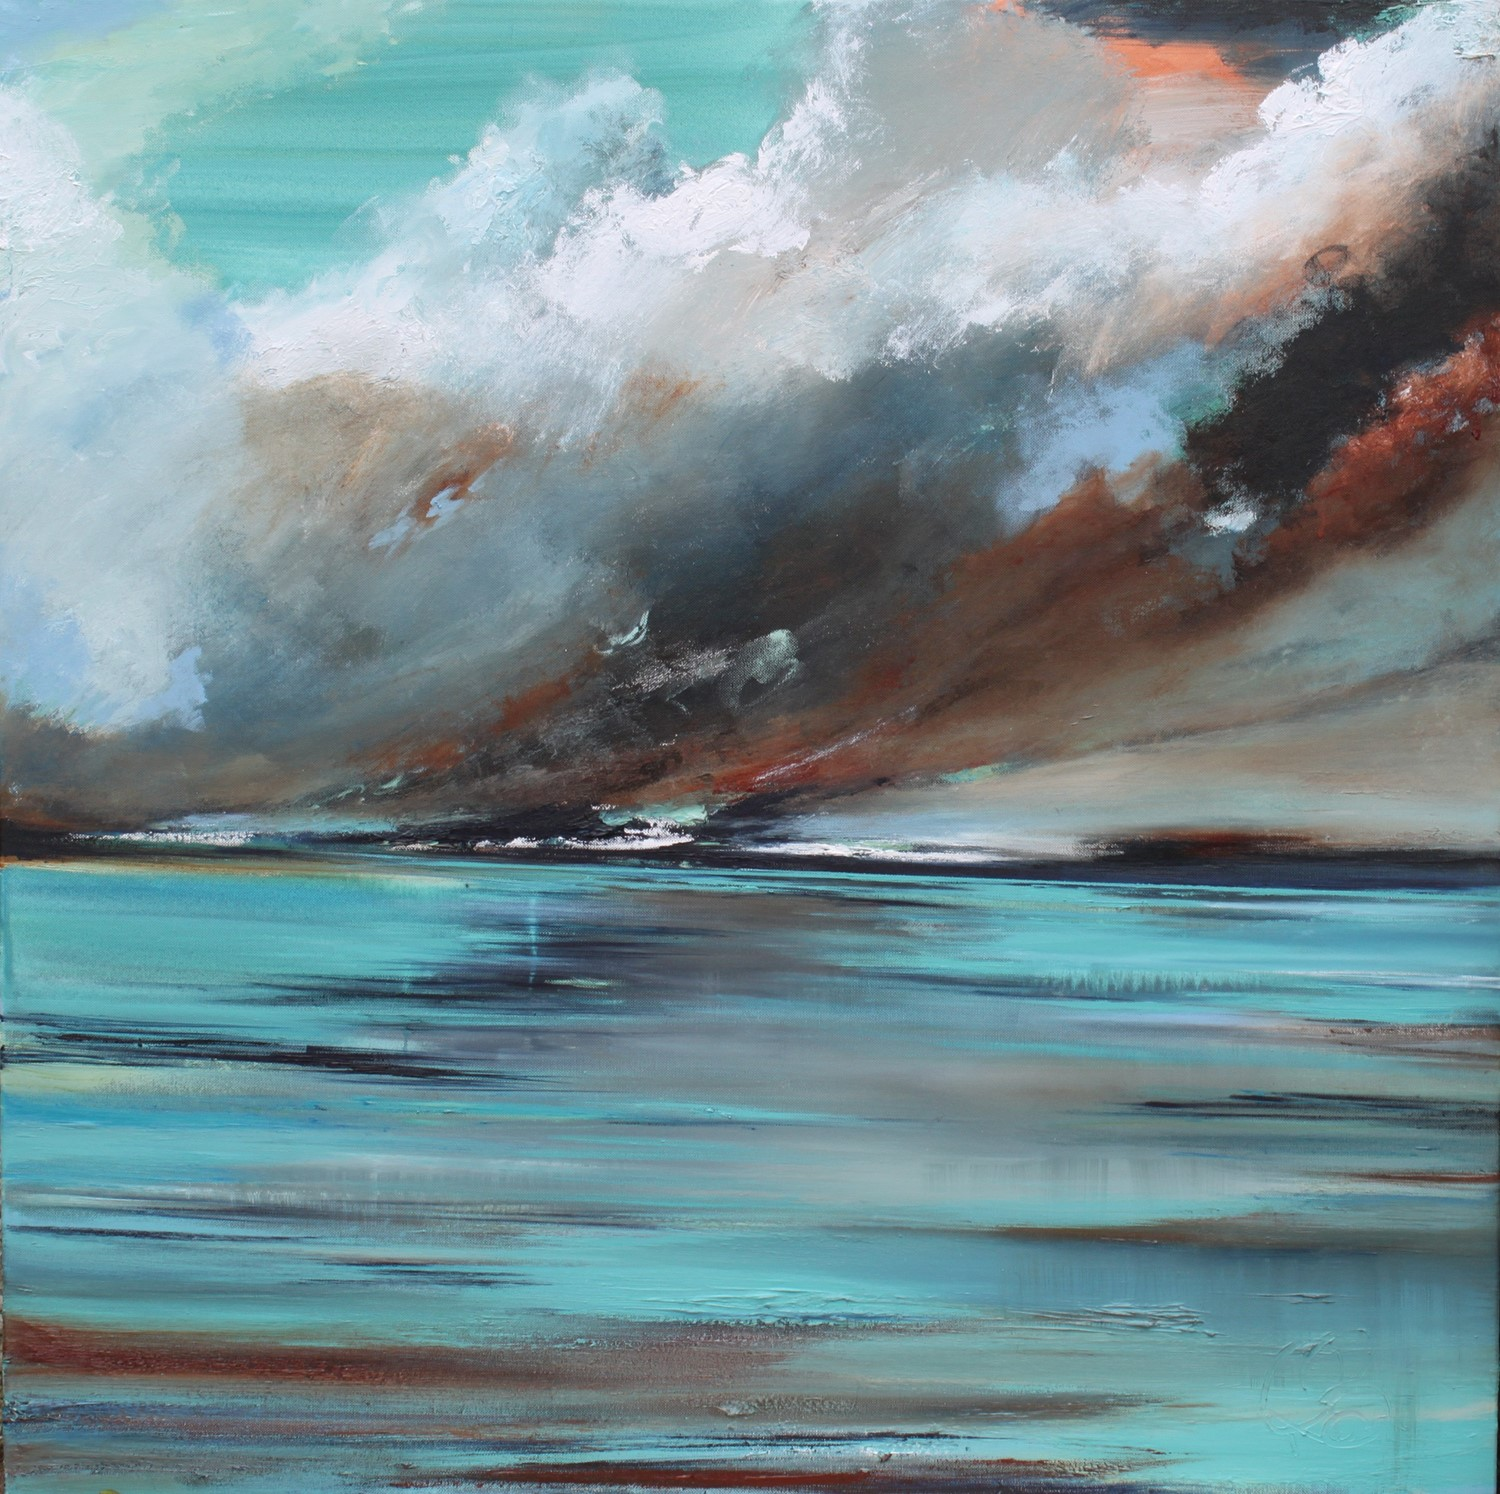 'Patch of Blue' by artist Rosanne Barr